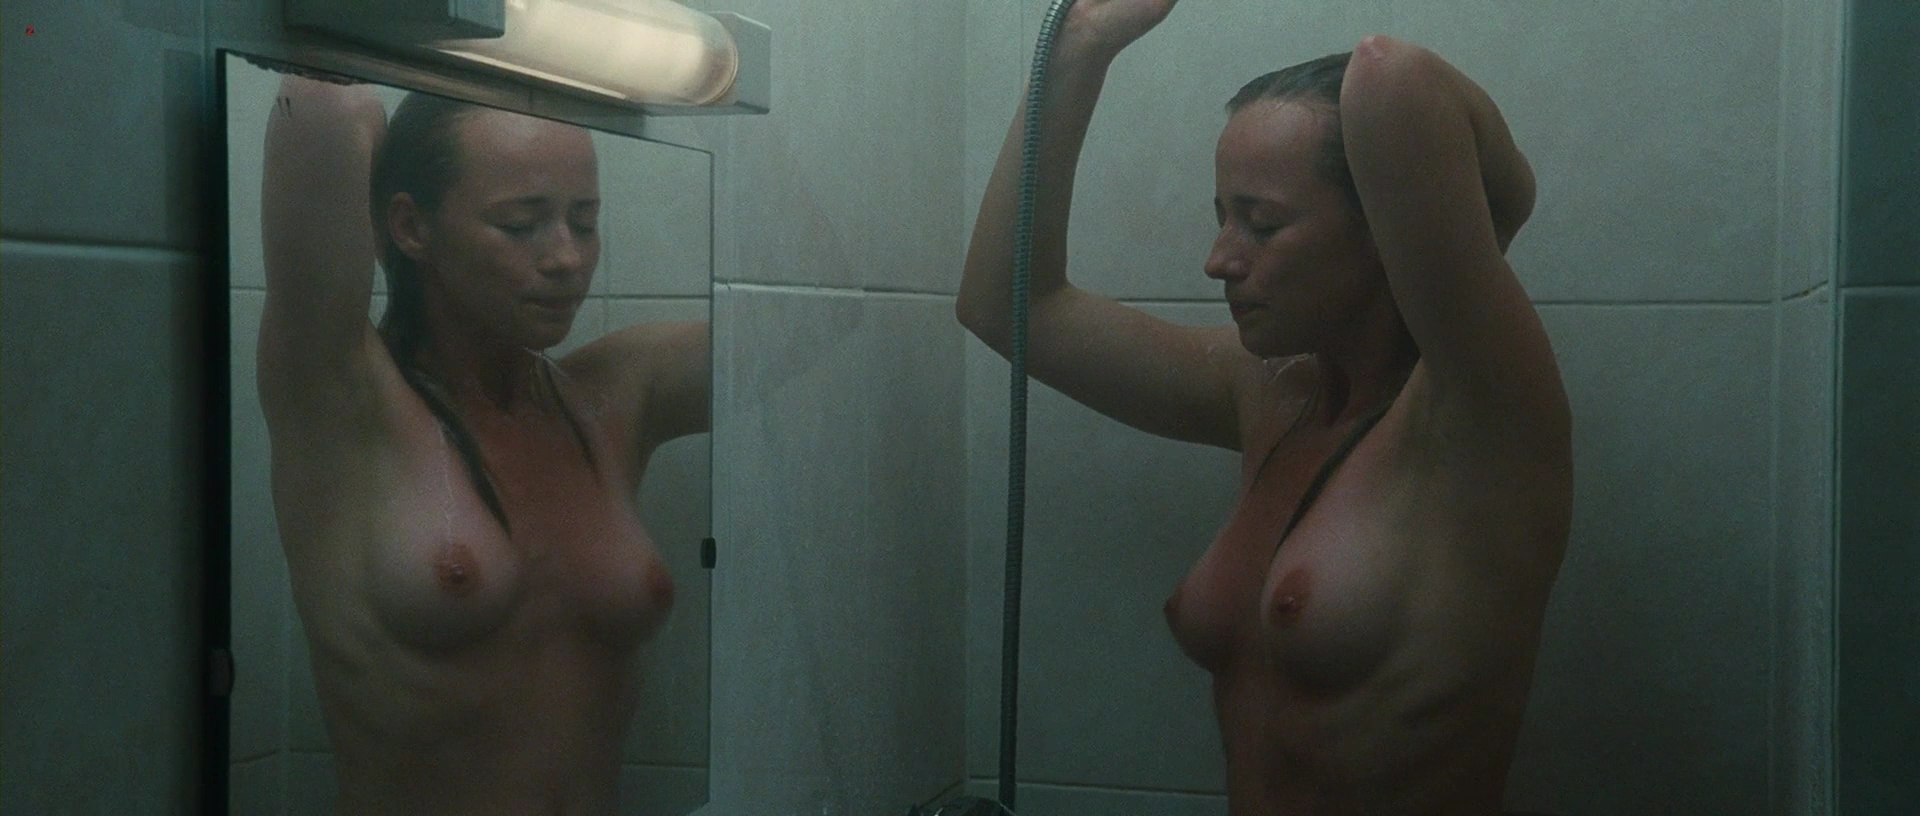 Karine Vanasse nude topless in the shower and bath in – Switch (2011) hd1080p